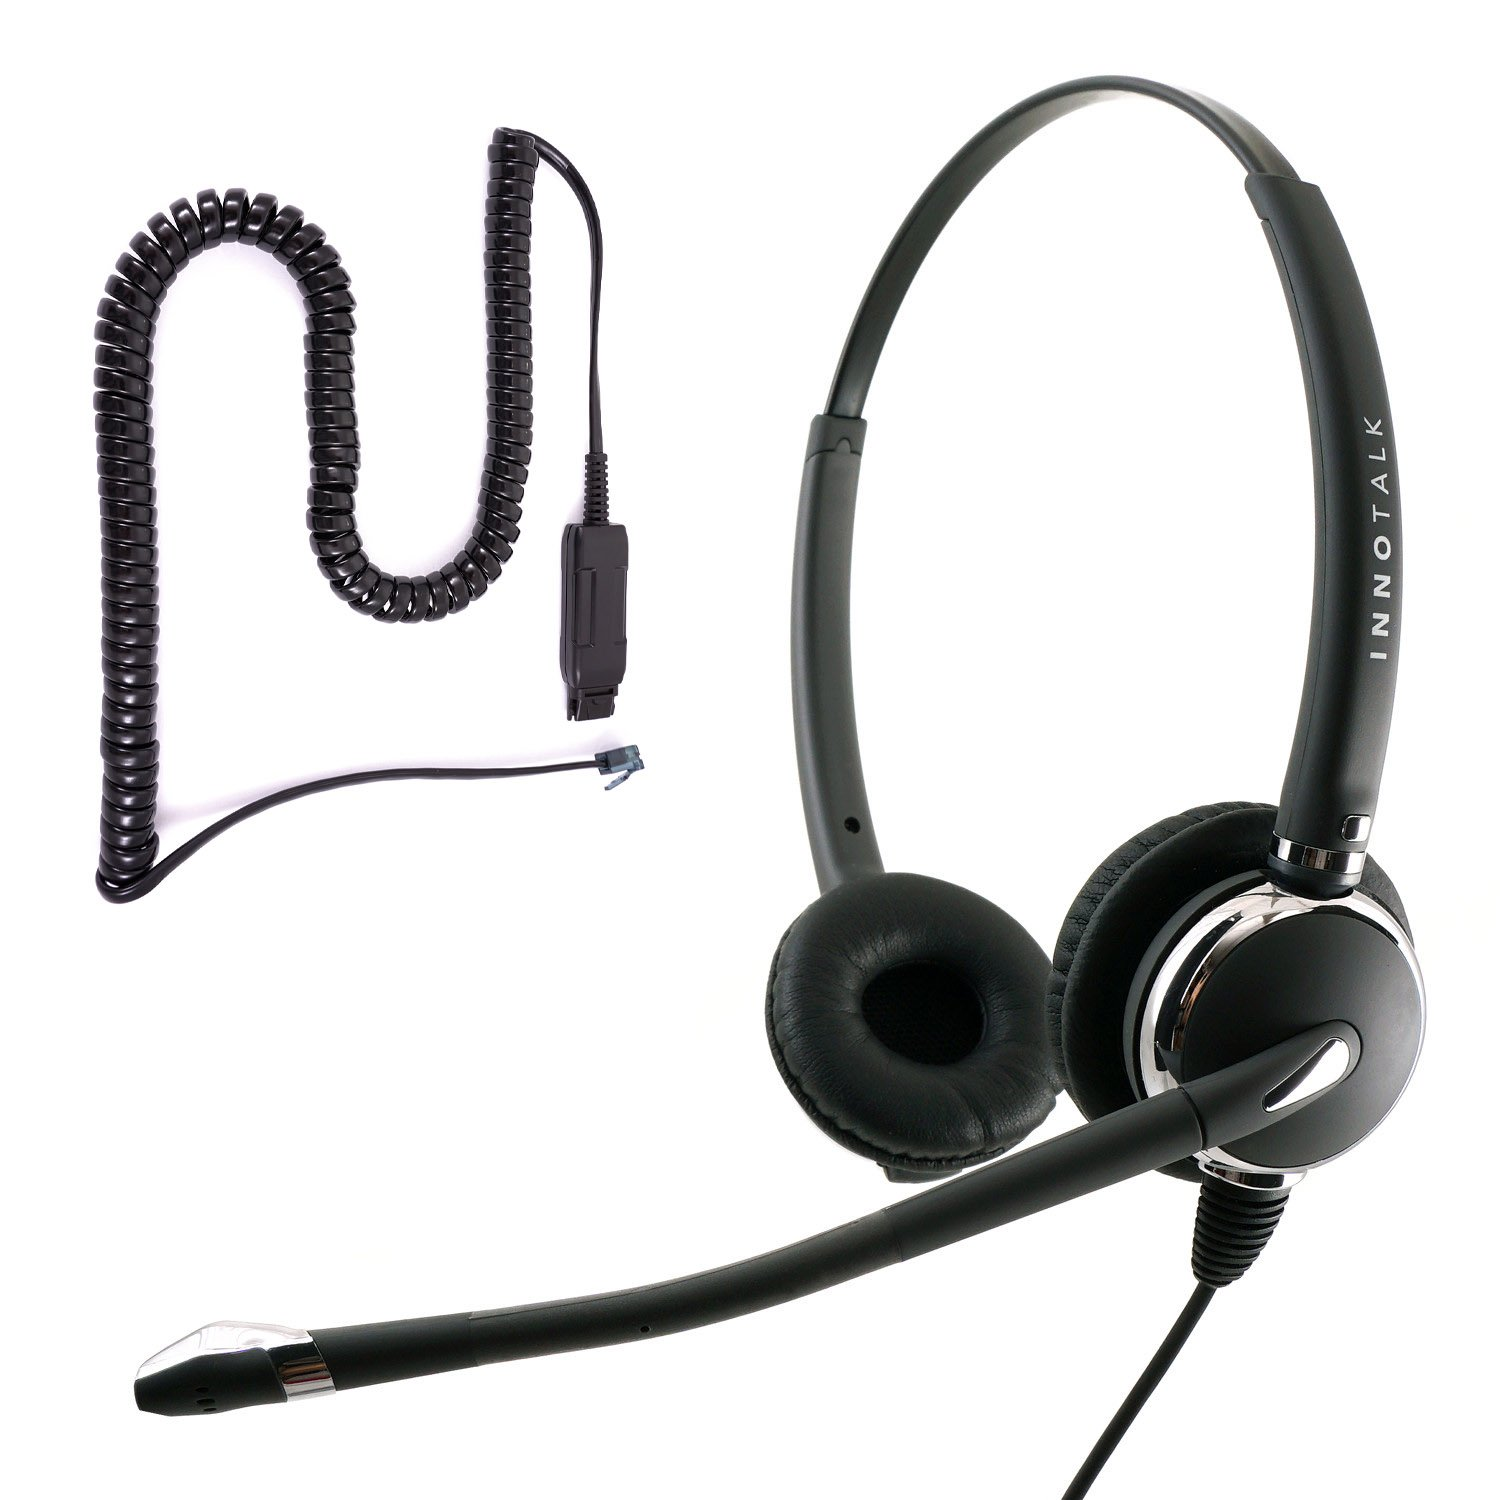 Avaya IP 1608, 1616, 9601, 9608, 9610, 9611, 9611G Pro Binaural Noise Cancel Mic Phone Headset with Plantronics compatible QD for Call Center